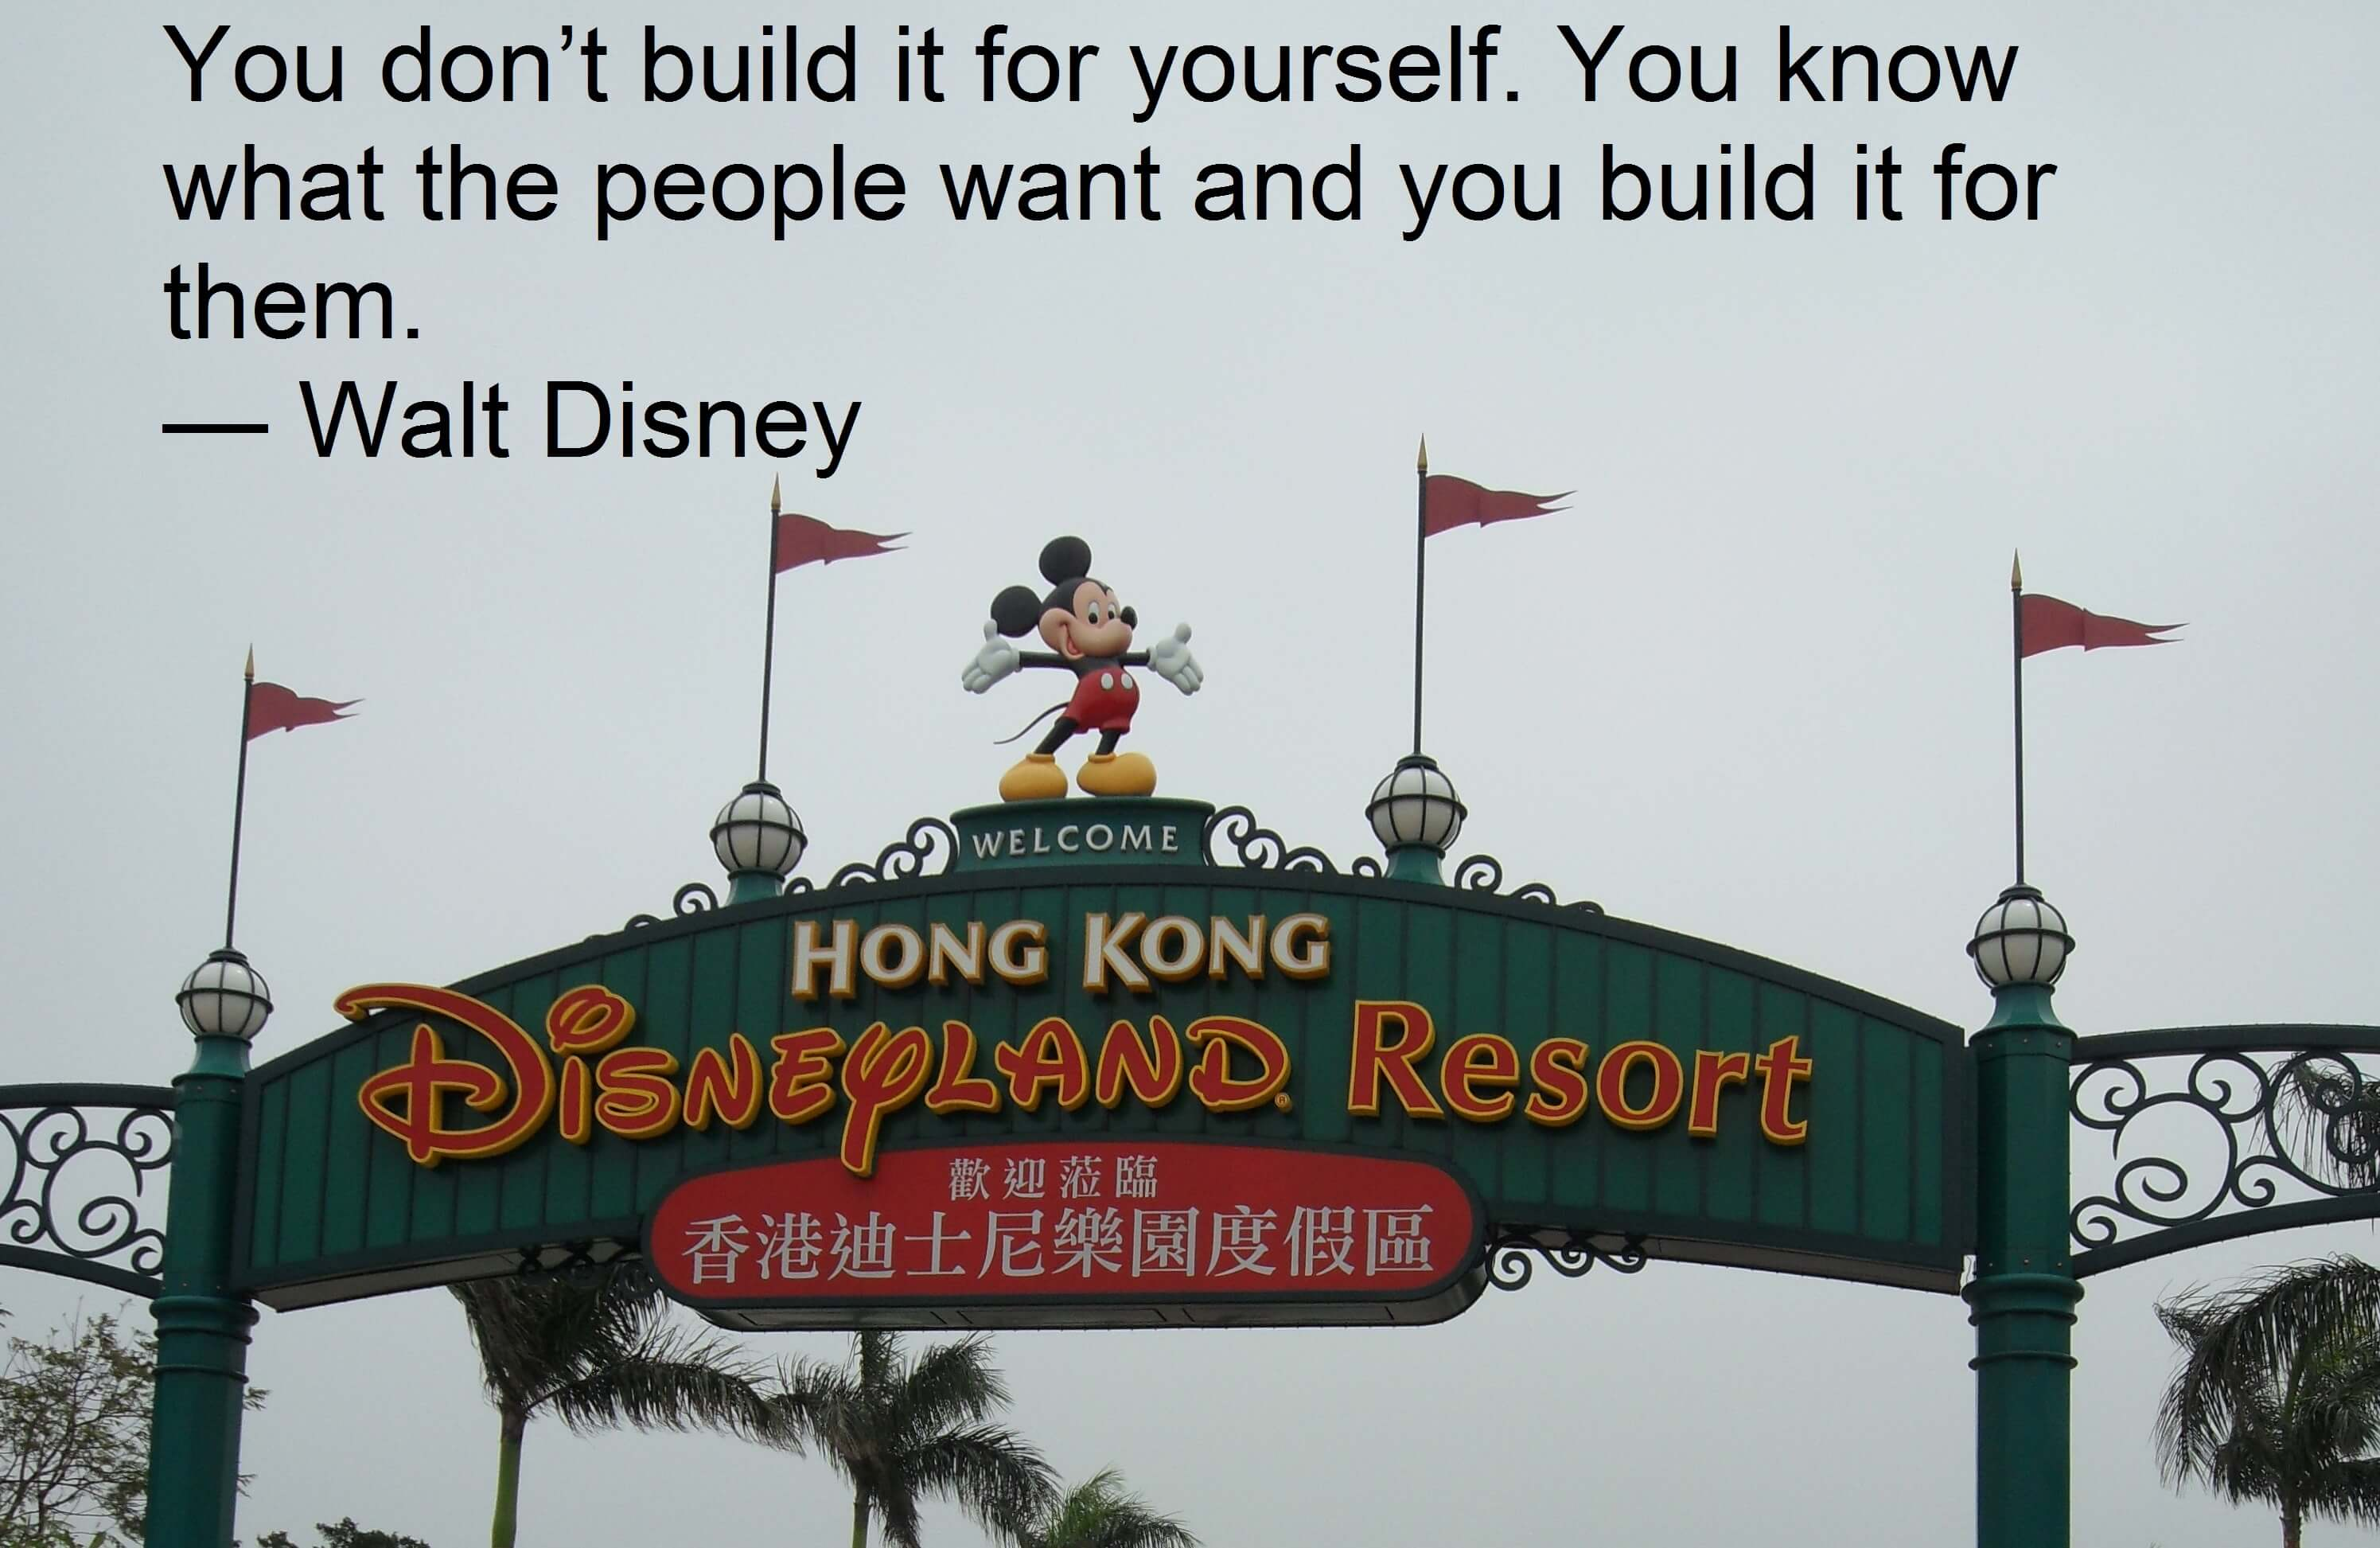 You don't build it for yourself. You know what the people want and you build it for them. — Walt Disney Employee Engagement Quote